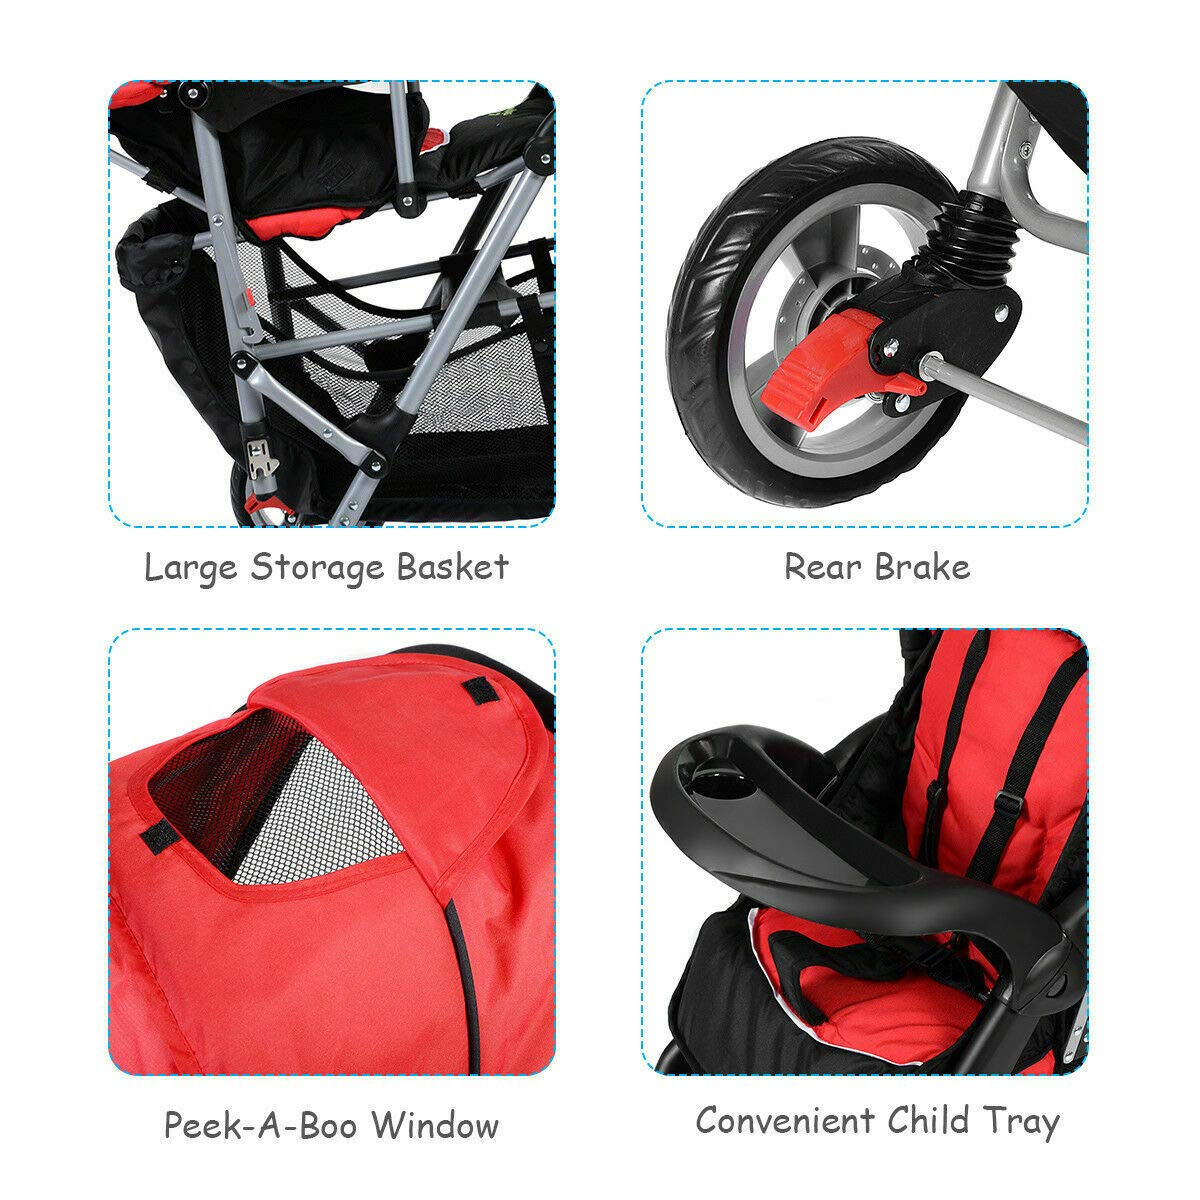 Cozinest Foldable Twin Baby Double Stroller Kids Jogger Travel Infant Pushchair Red by Cozinest (Image #3)